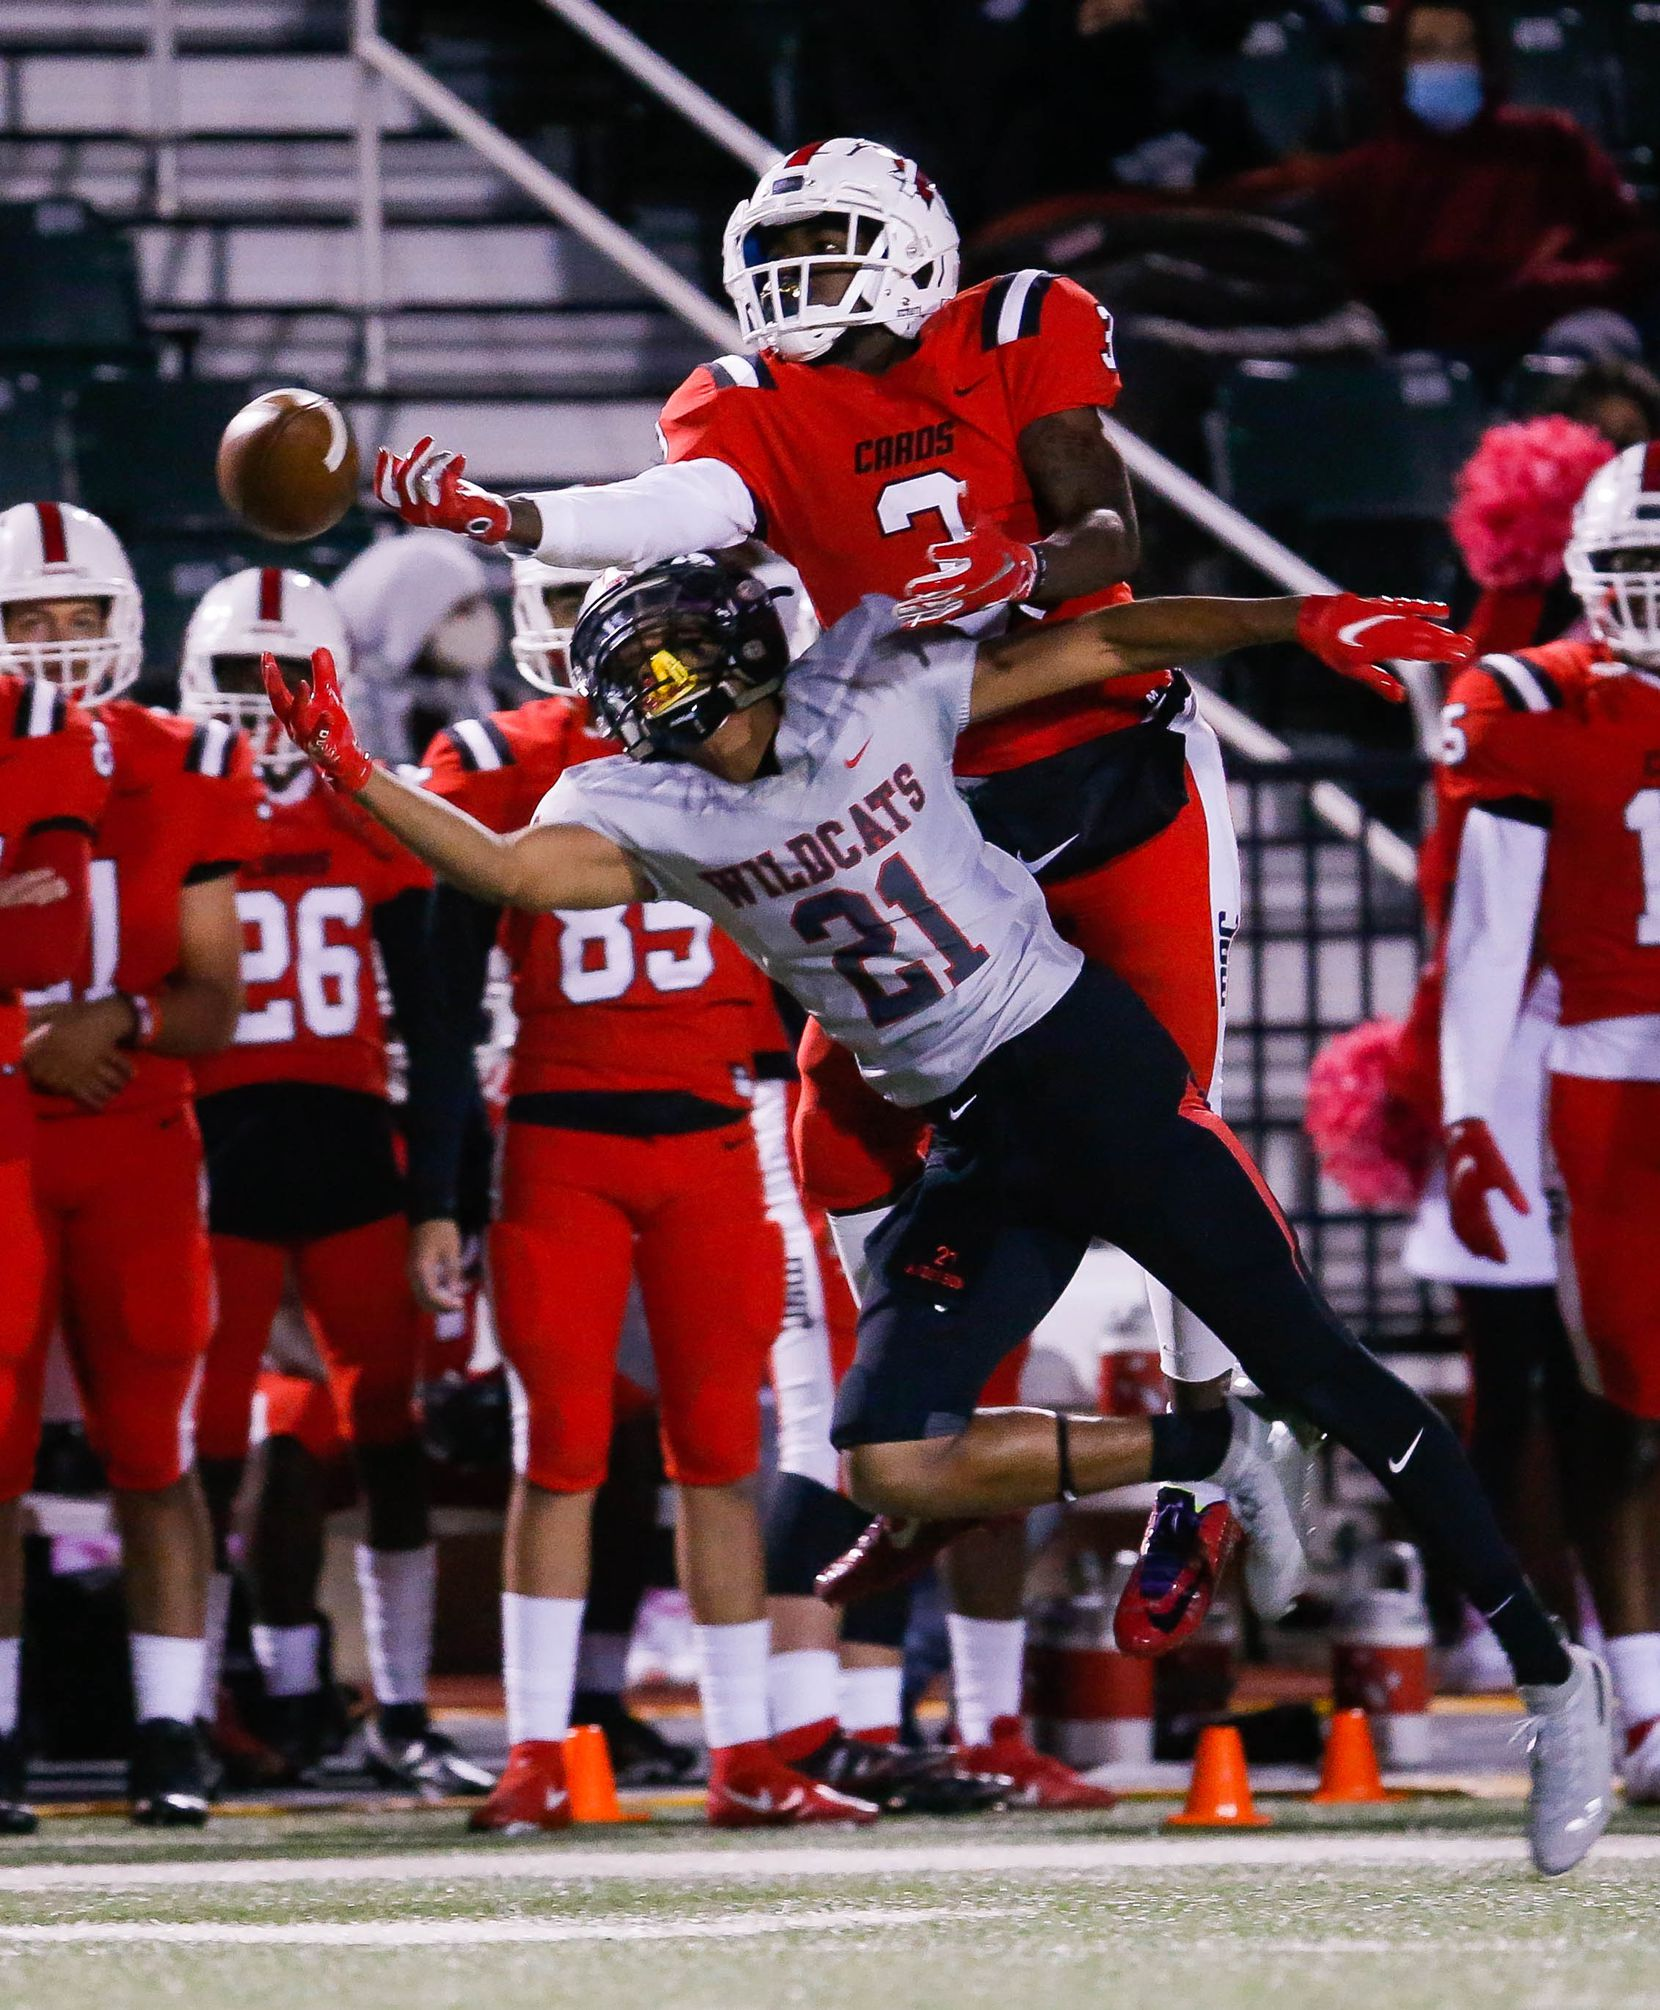 Irving MacArthur's Davion Daily (3) fails to catch the ball during the fourth quarter of a high school football game against Lake Highlands at Joy & Ralph Ellis Stadium in Irving on Friday, Oct. 23, 2020. (Juan Figueroa/ The Dallas Morning News)